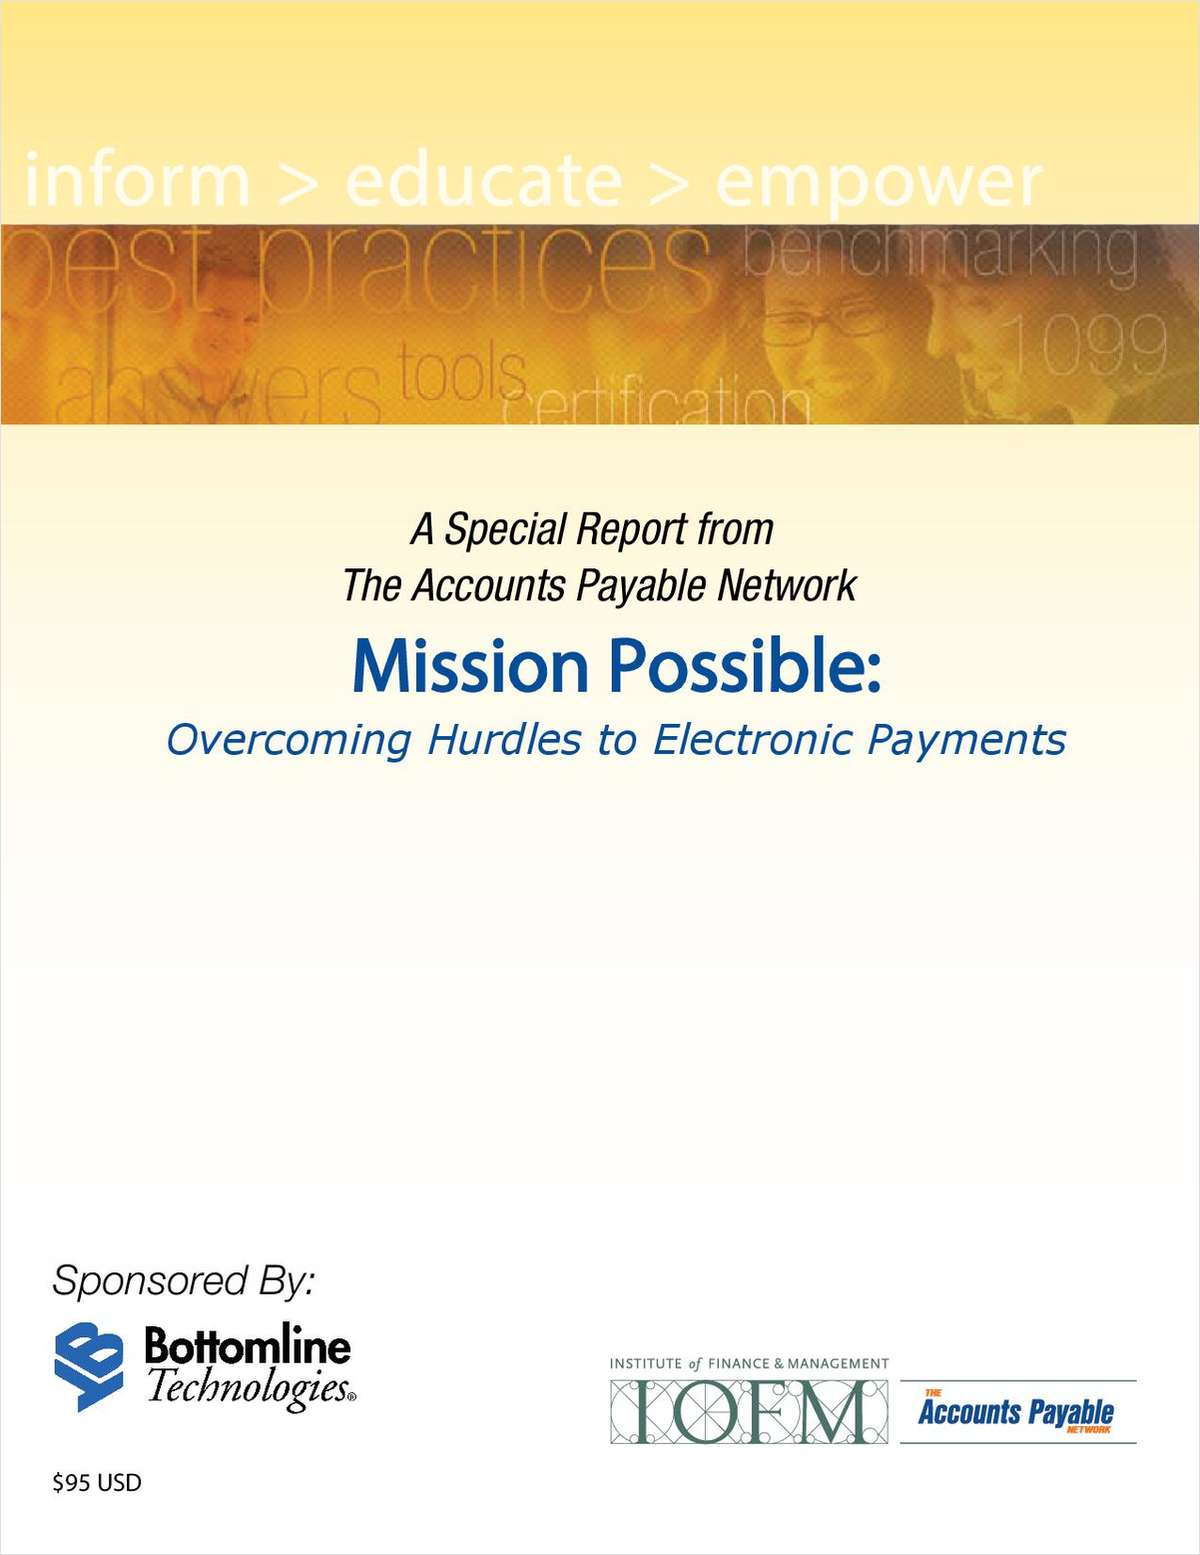 Mission Possible: Overcoming Hurdles to Electronic Payments